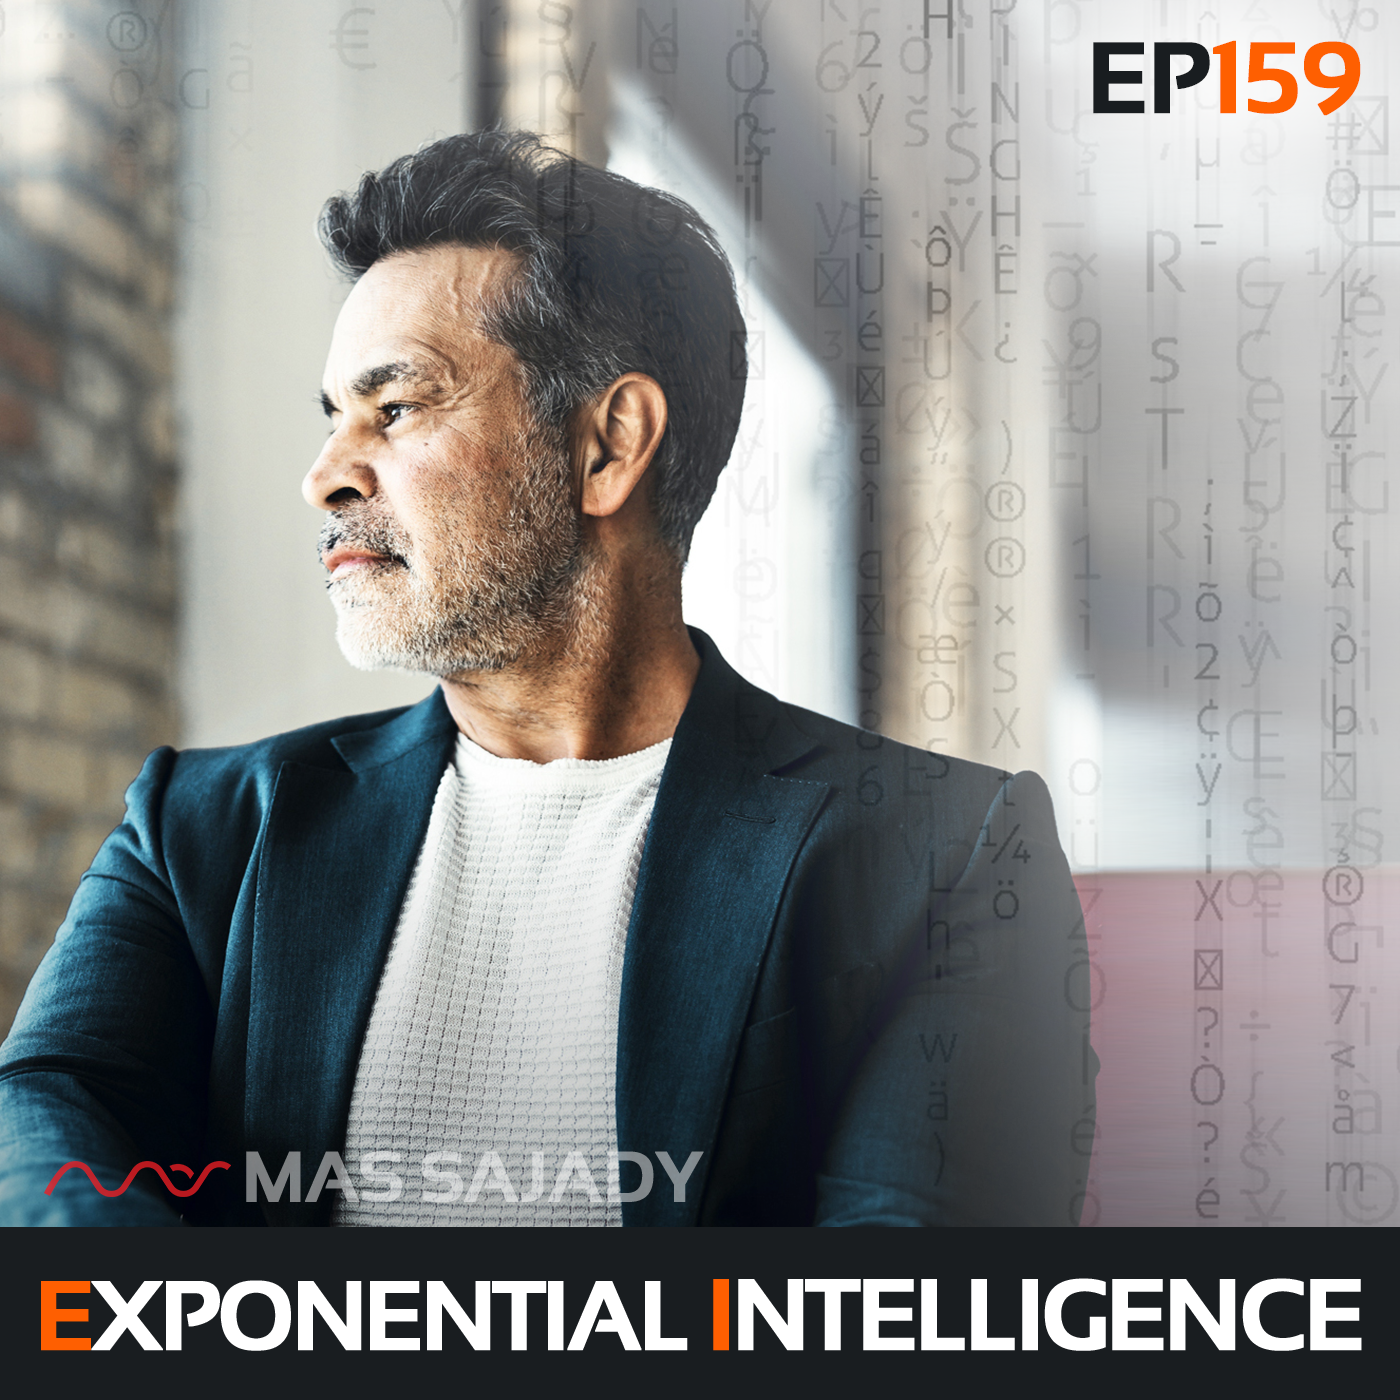 mas-sajady-exponential-intelligence-podcast-action-vs-neutrality.png